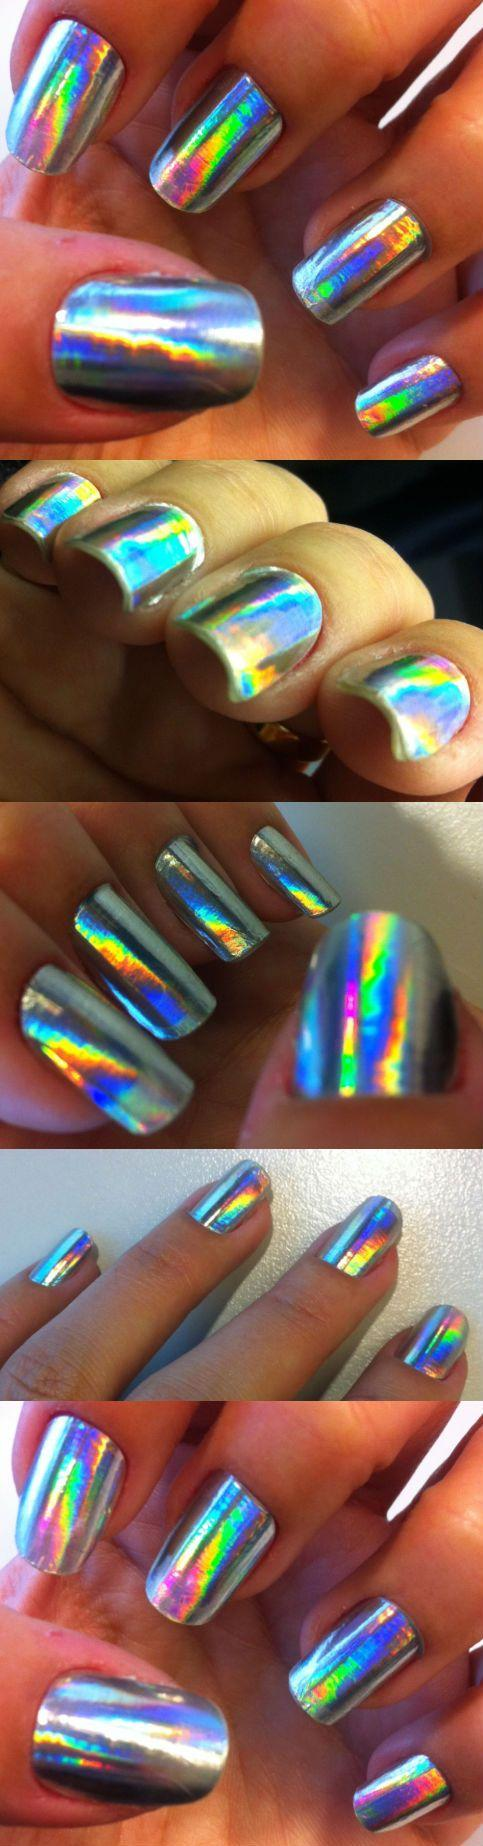 Hochzeit - Nails Of The Week - Silver Holographic Nail Foils